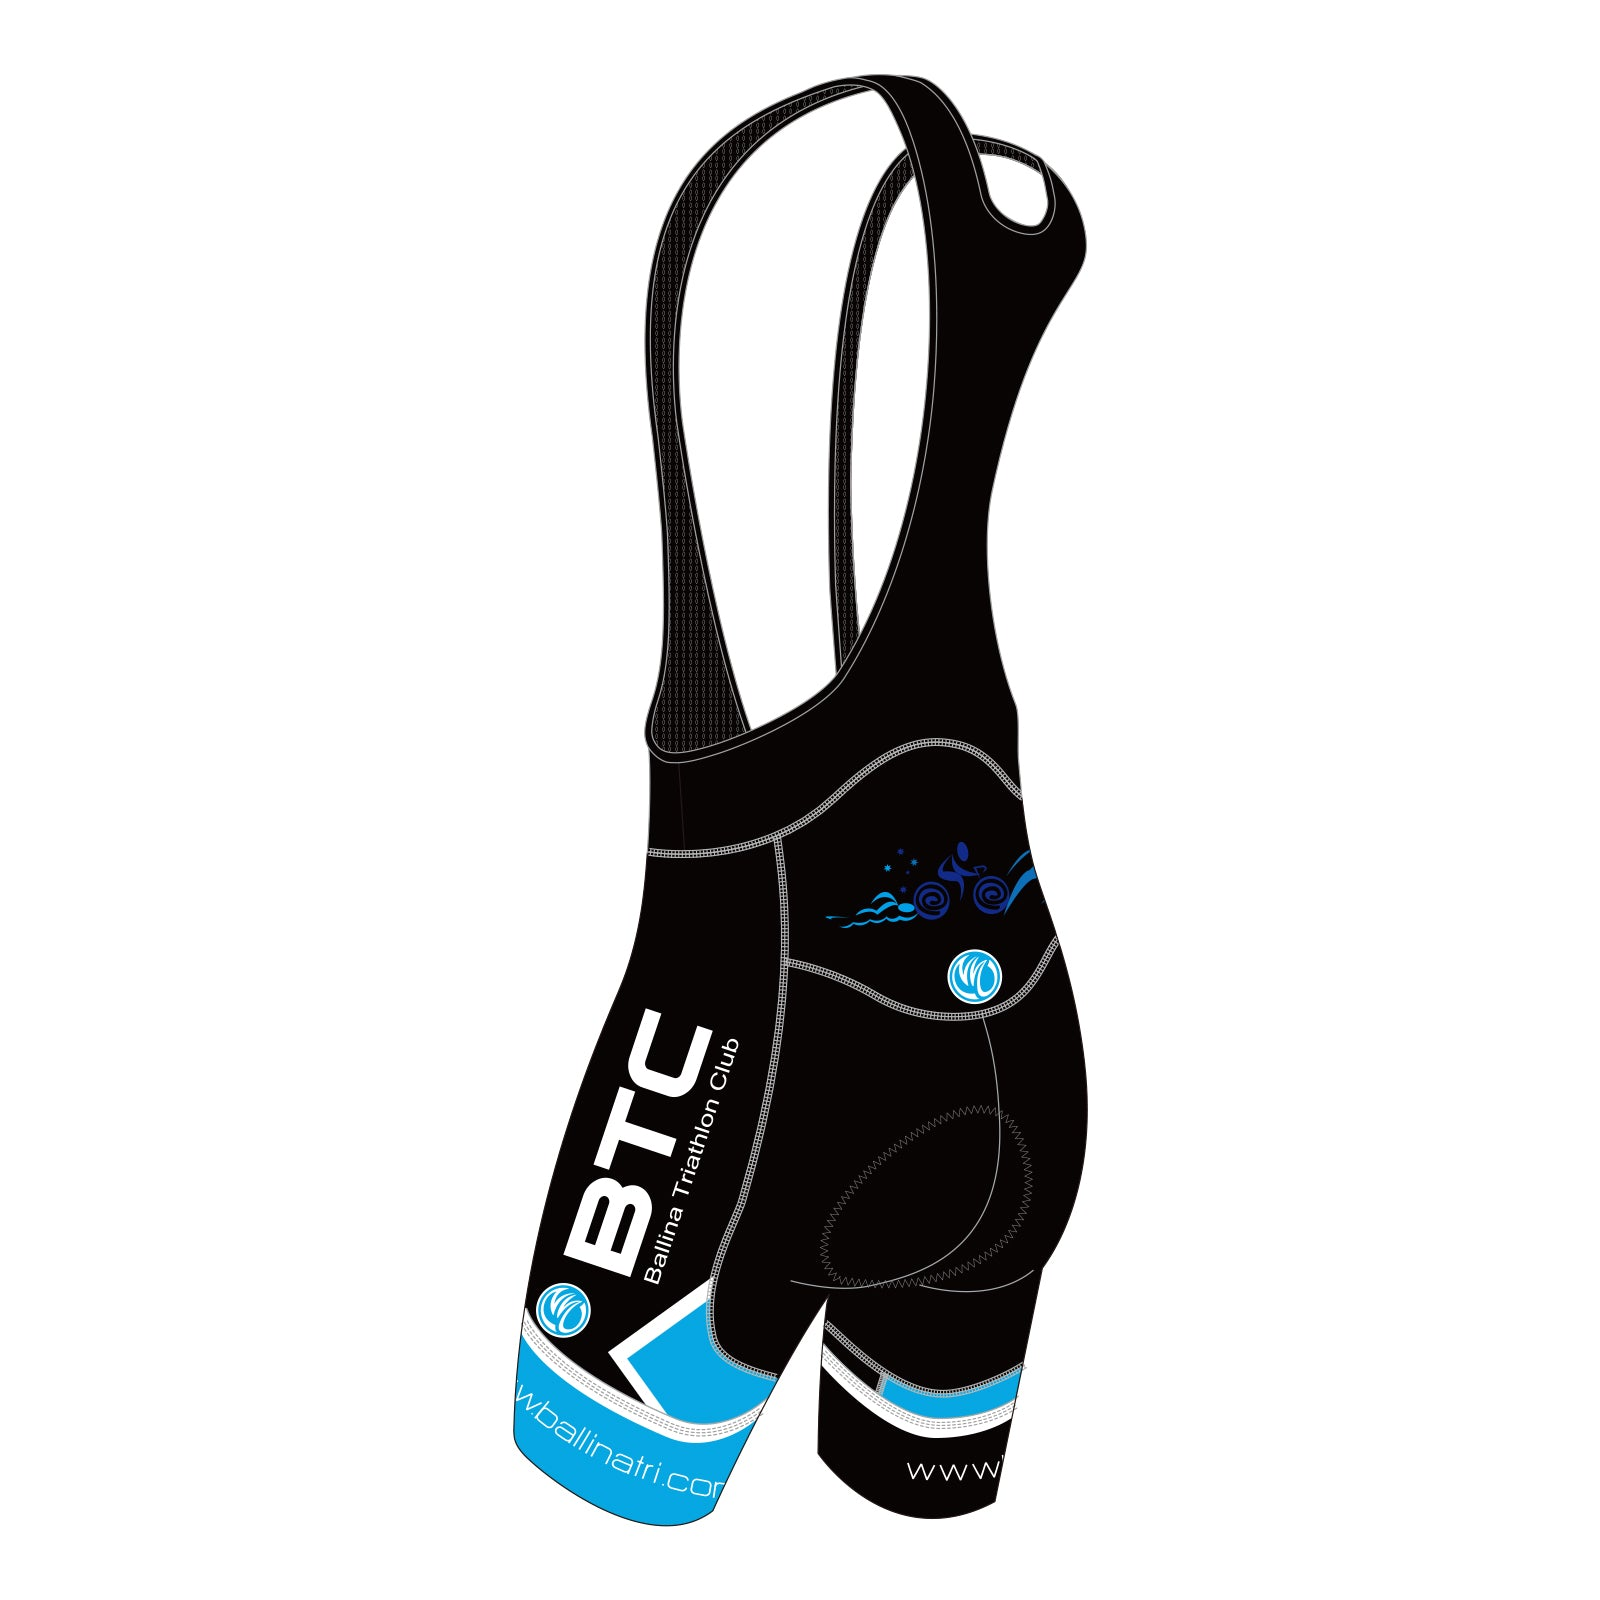 BTC GOLD Cycling Bib Shorts